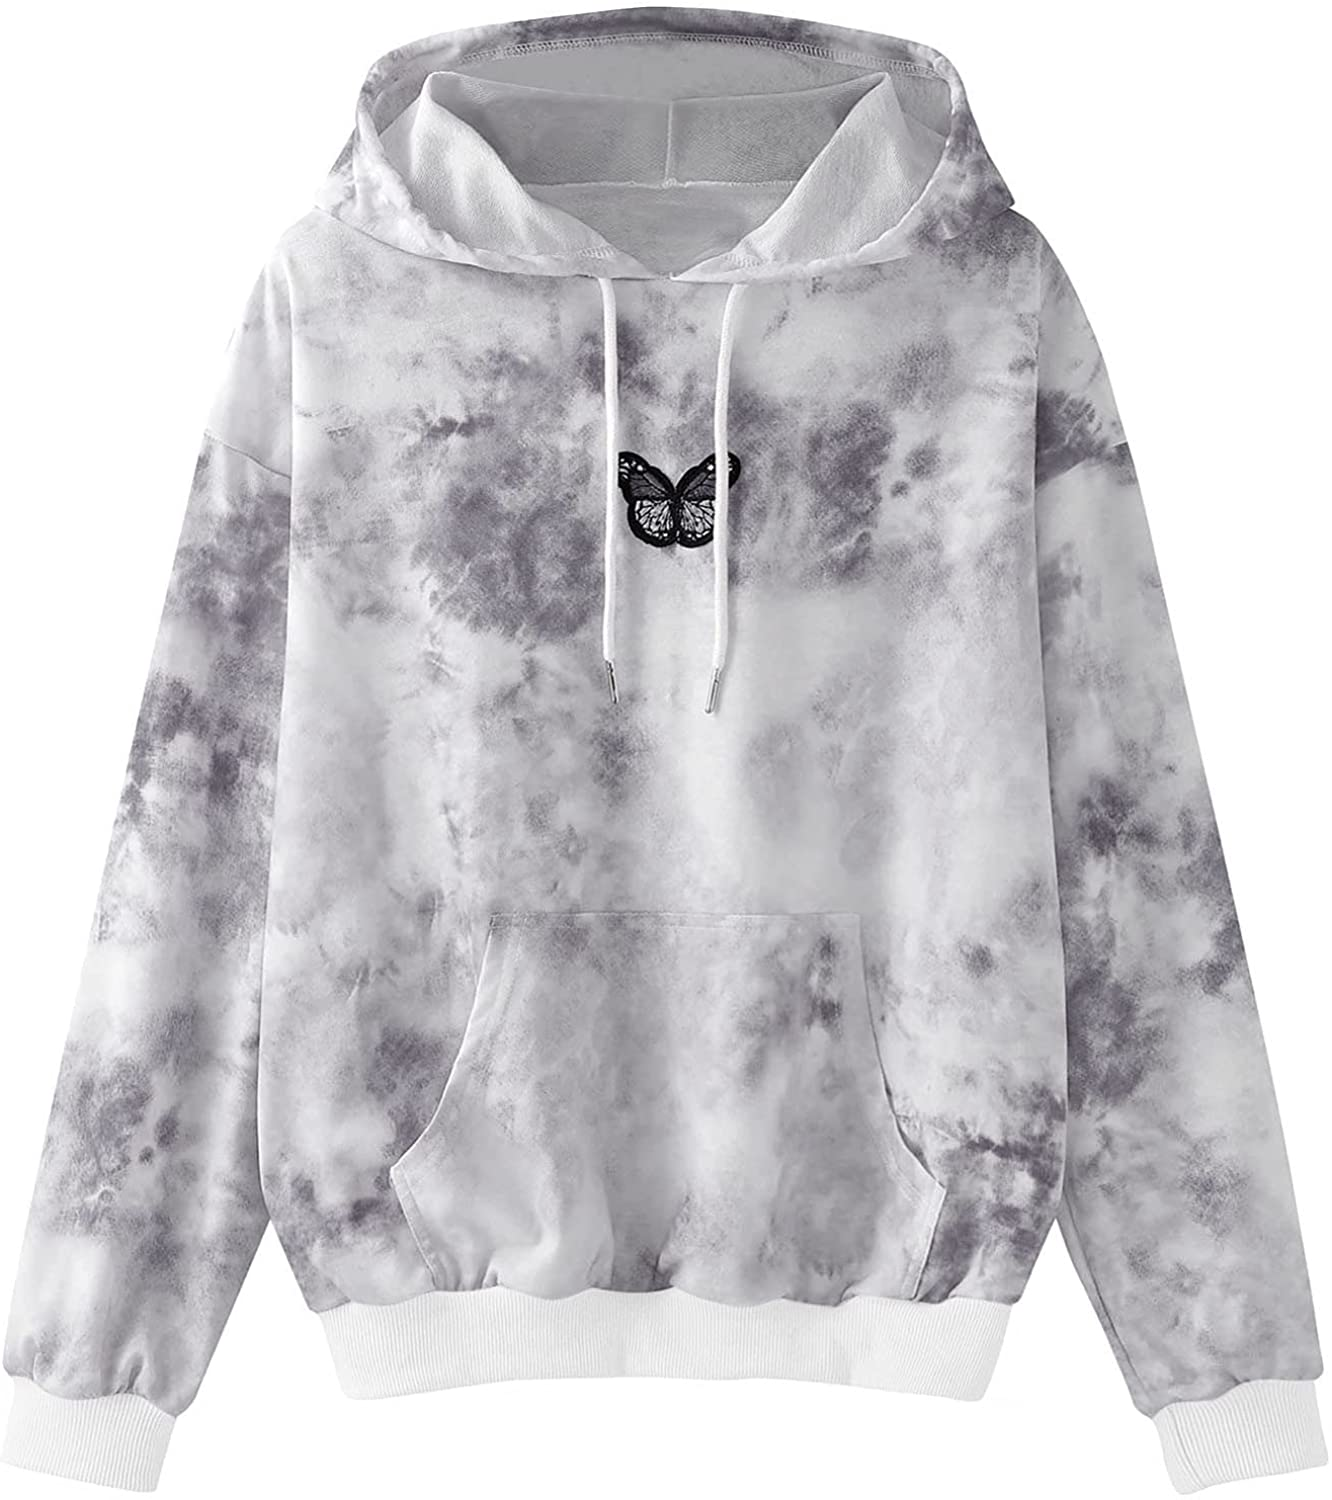 Toeava Tie Dye Hoodies Sweatshirt for Women,Women's Butterfly Embroidery Long Sleeve Pullover Tops Shirts with Pocket